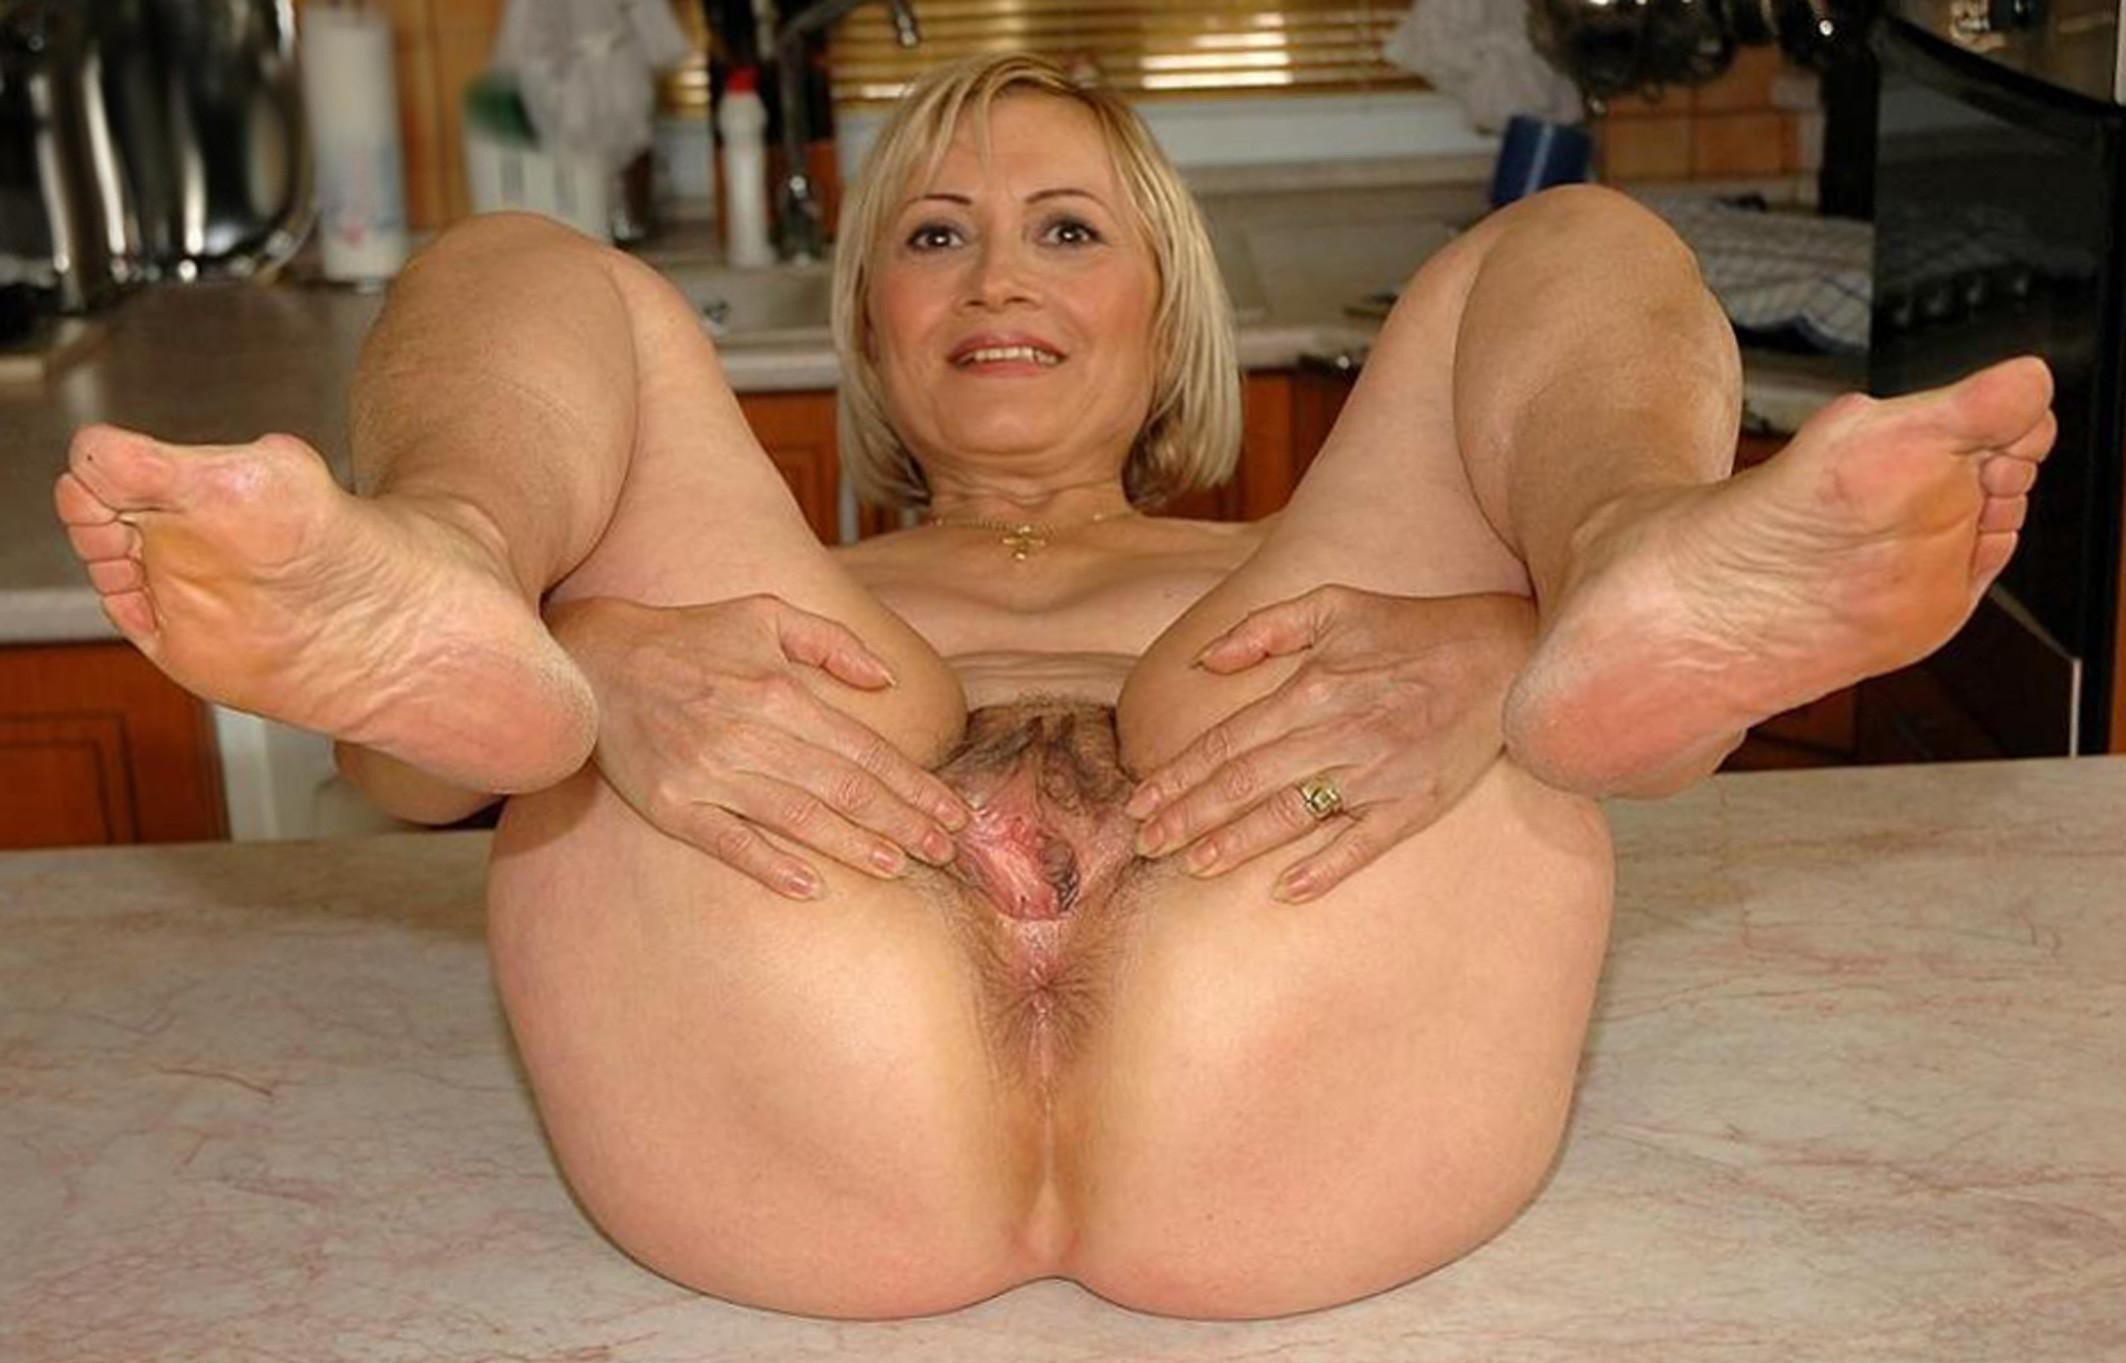 Piercing category of this granny porn site